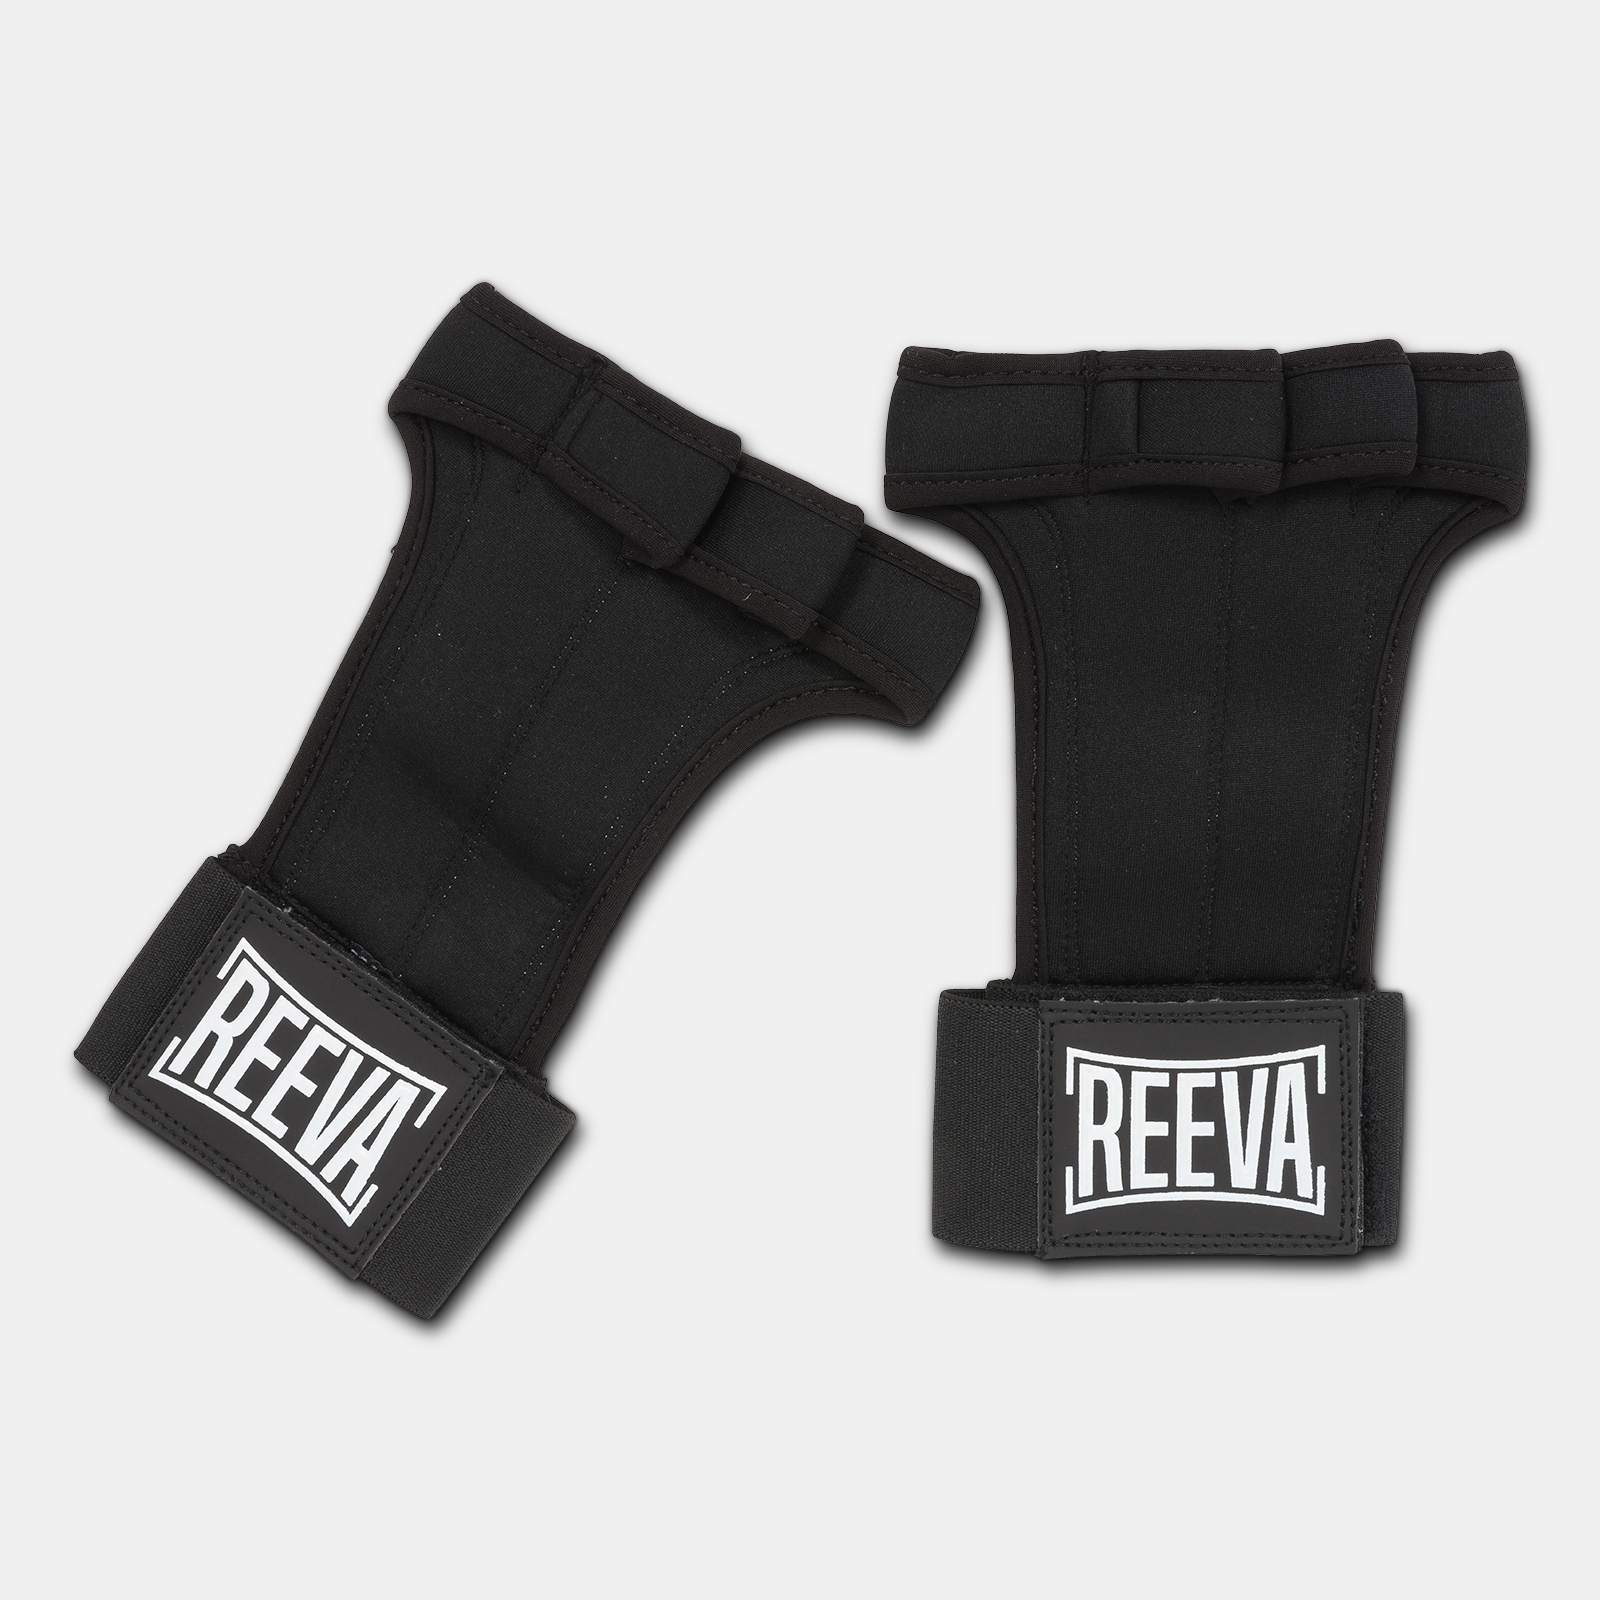 Reeva Gloves image